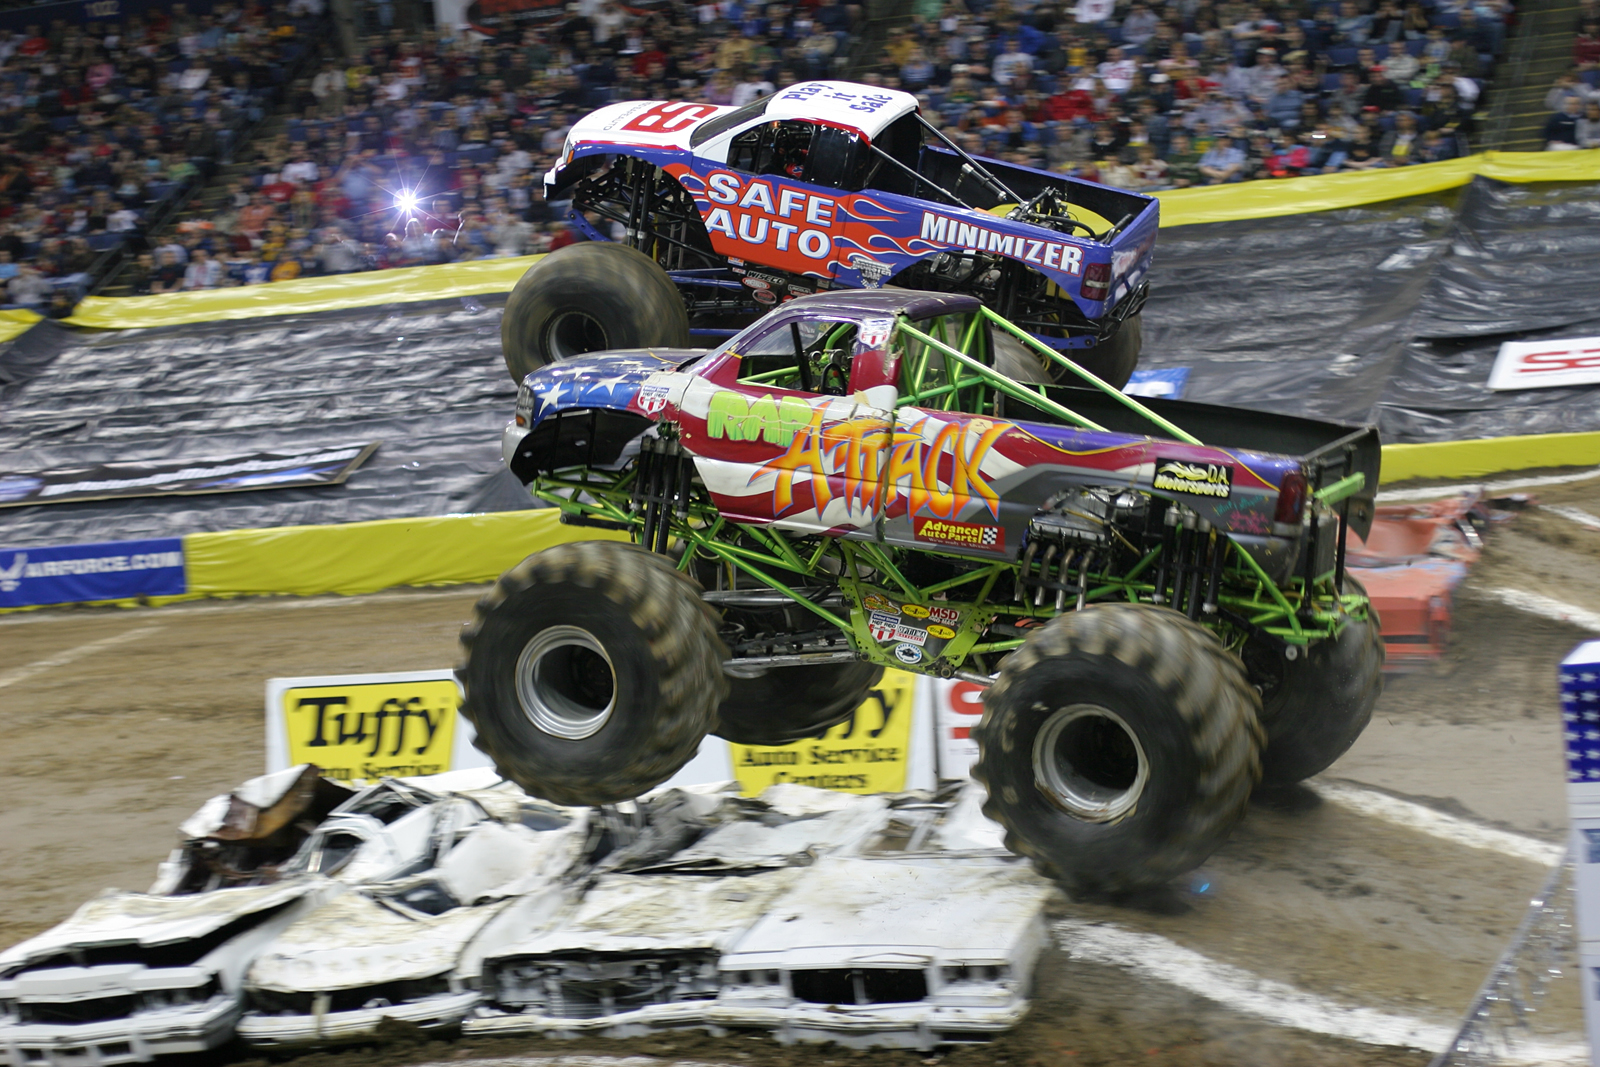 monstertrucks_wallpaper_010_1600_1067.jpg